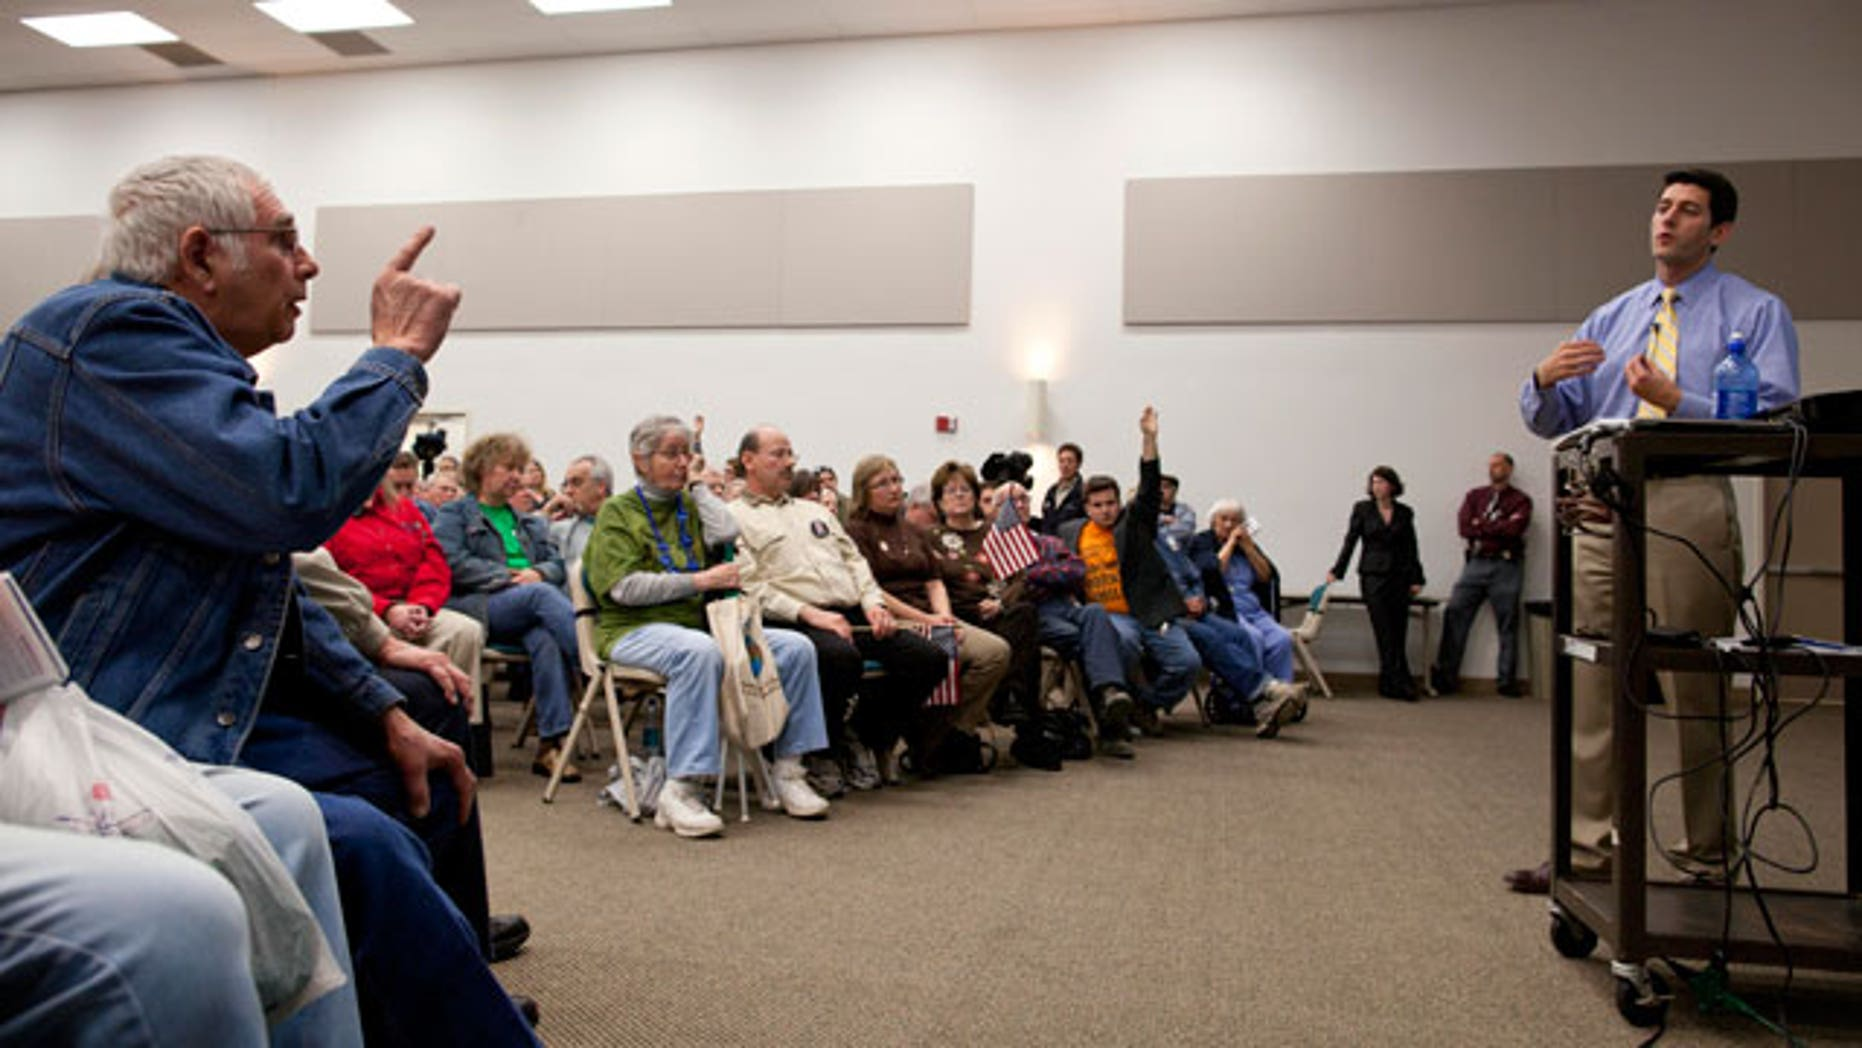 A man makes a point to U.S. Rep. Paul Ryan, R-Wis., right, as he speaks during a listening session Tuesday, April, 26, 2011 at Gateway Technical College in Kenosha, Wis. (AP)